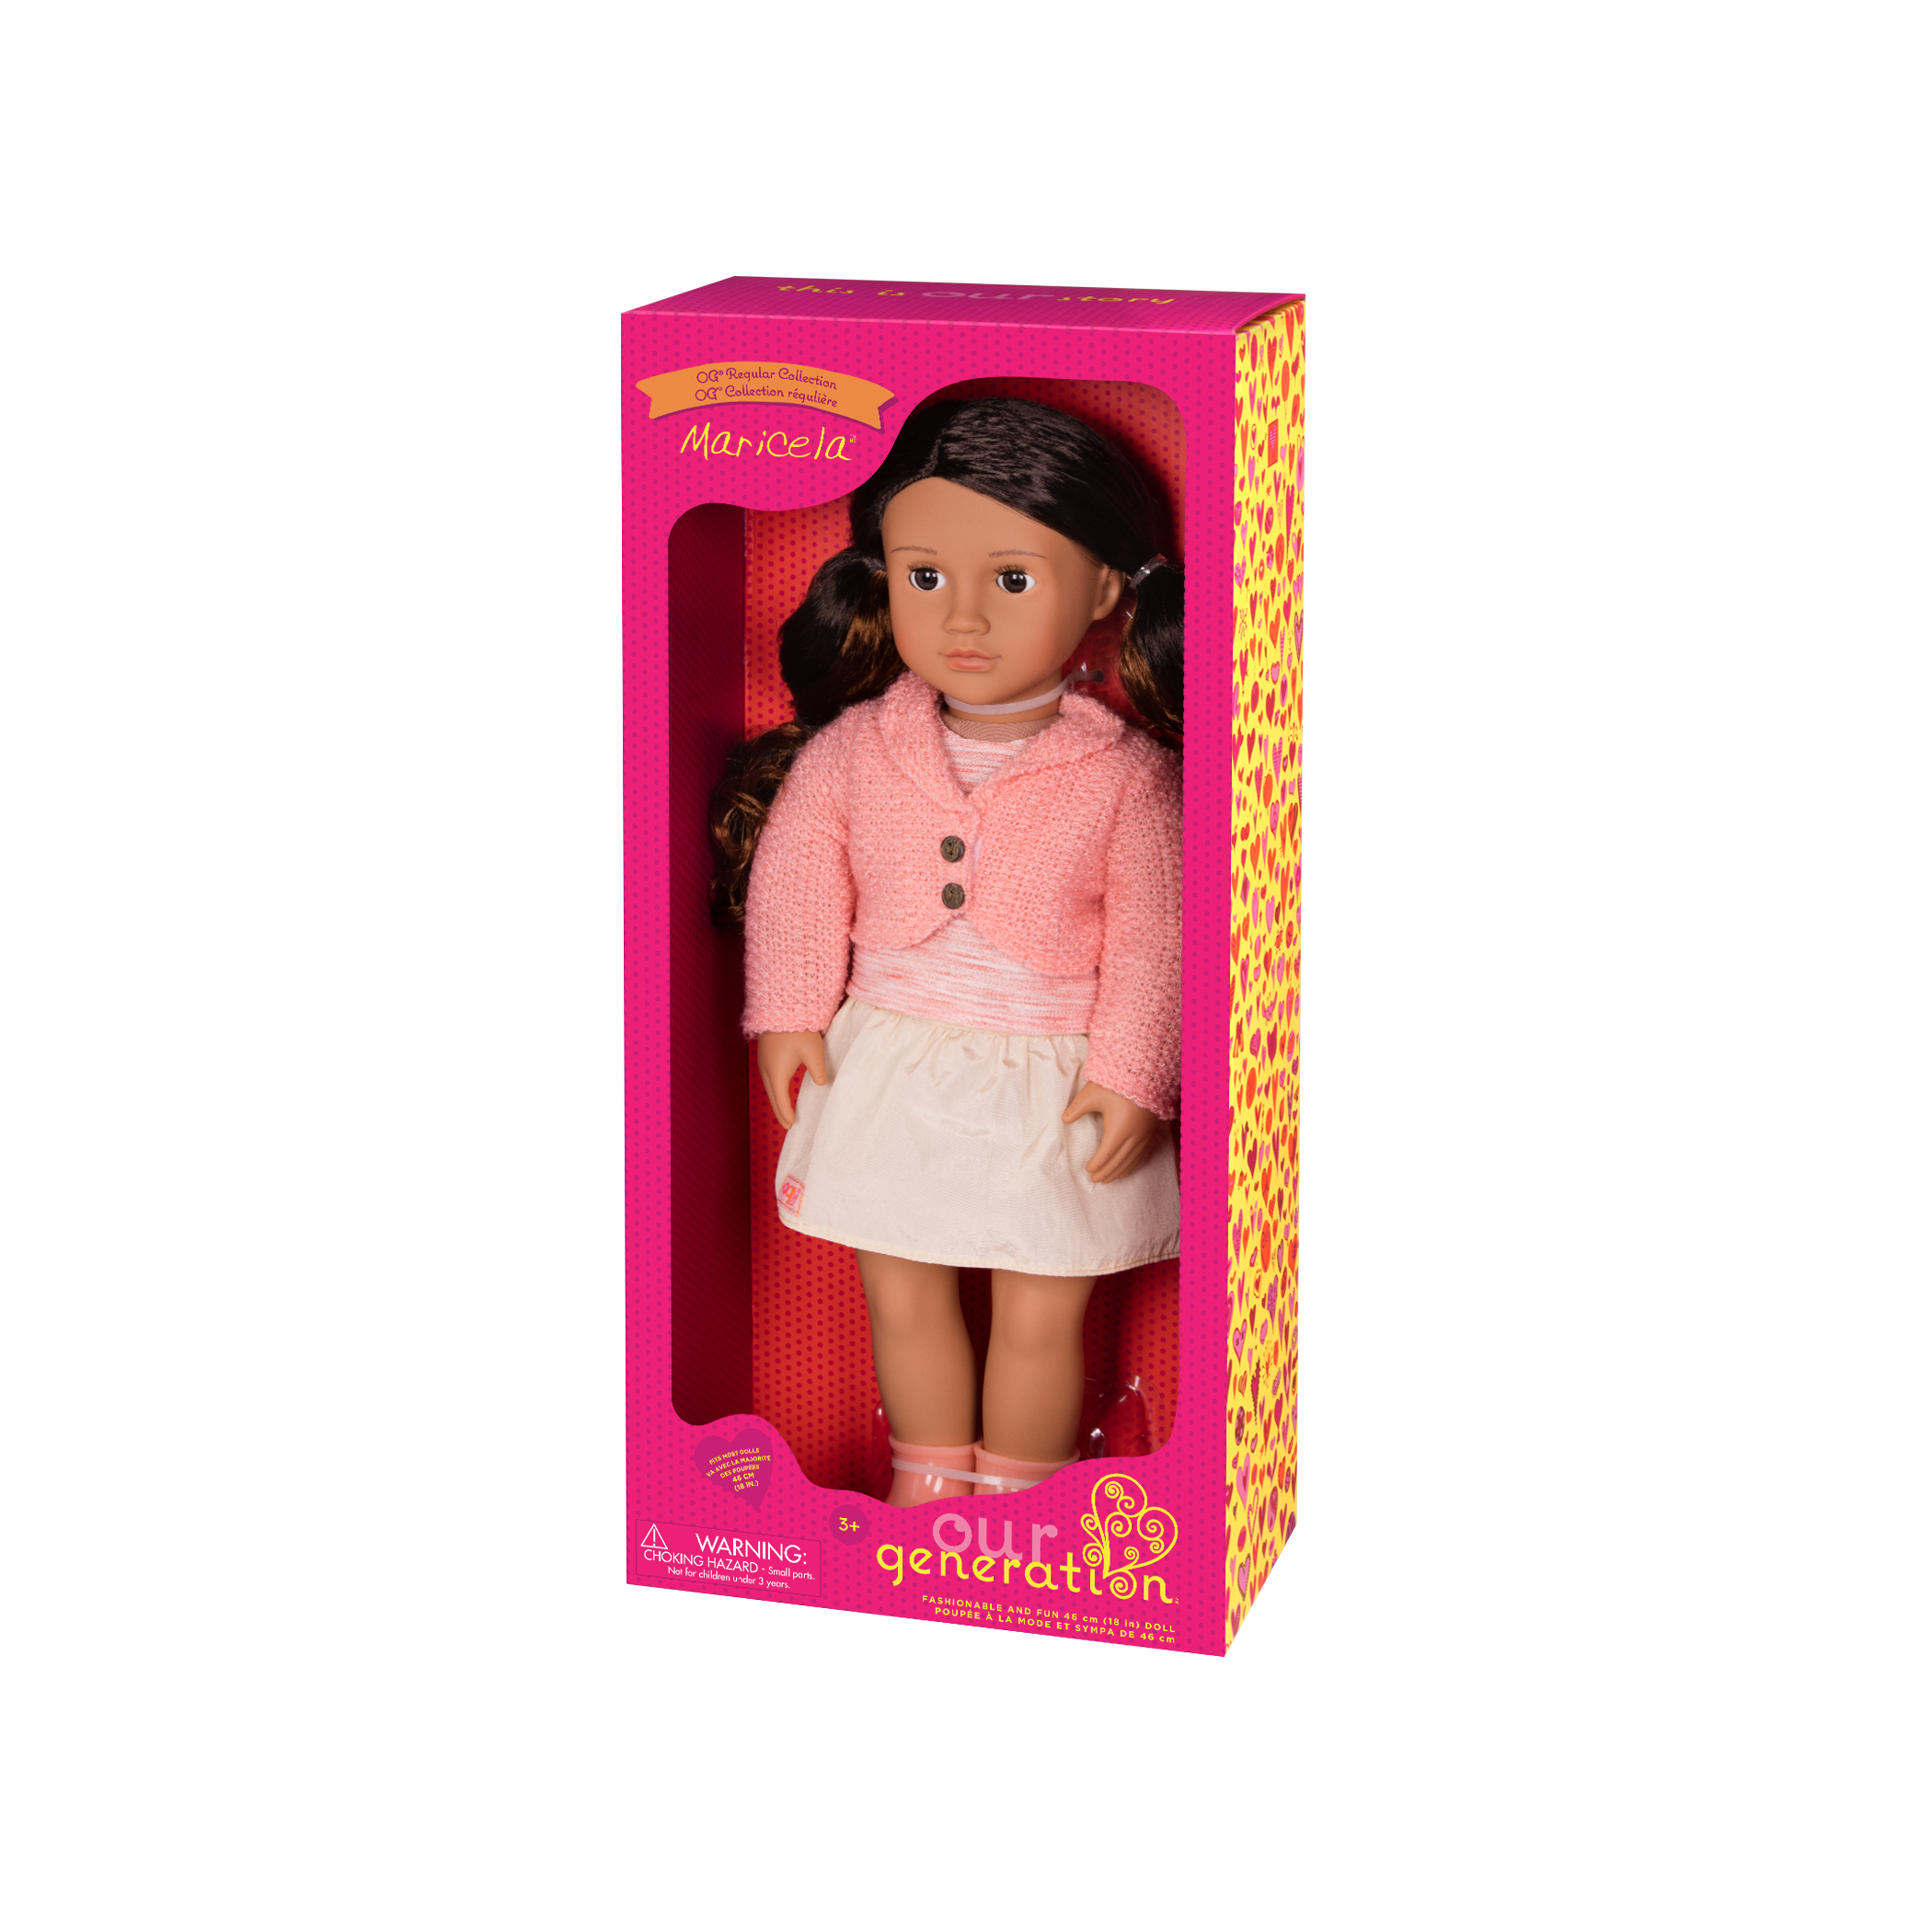 Maricela Regular 18-inch Doll in packaging